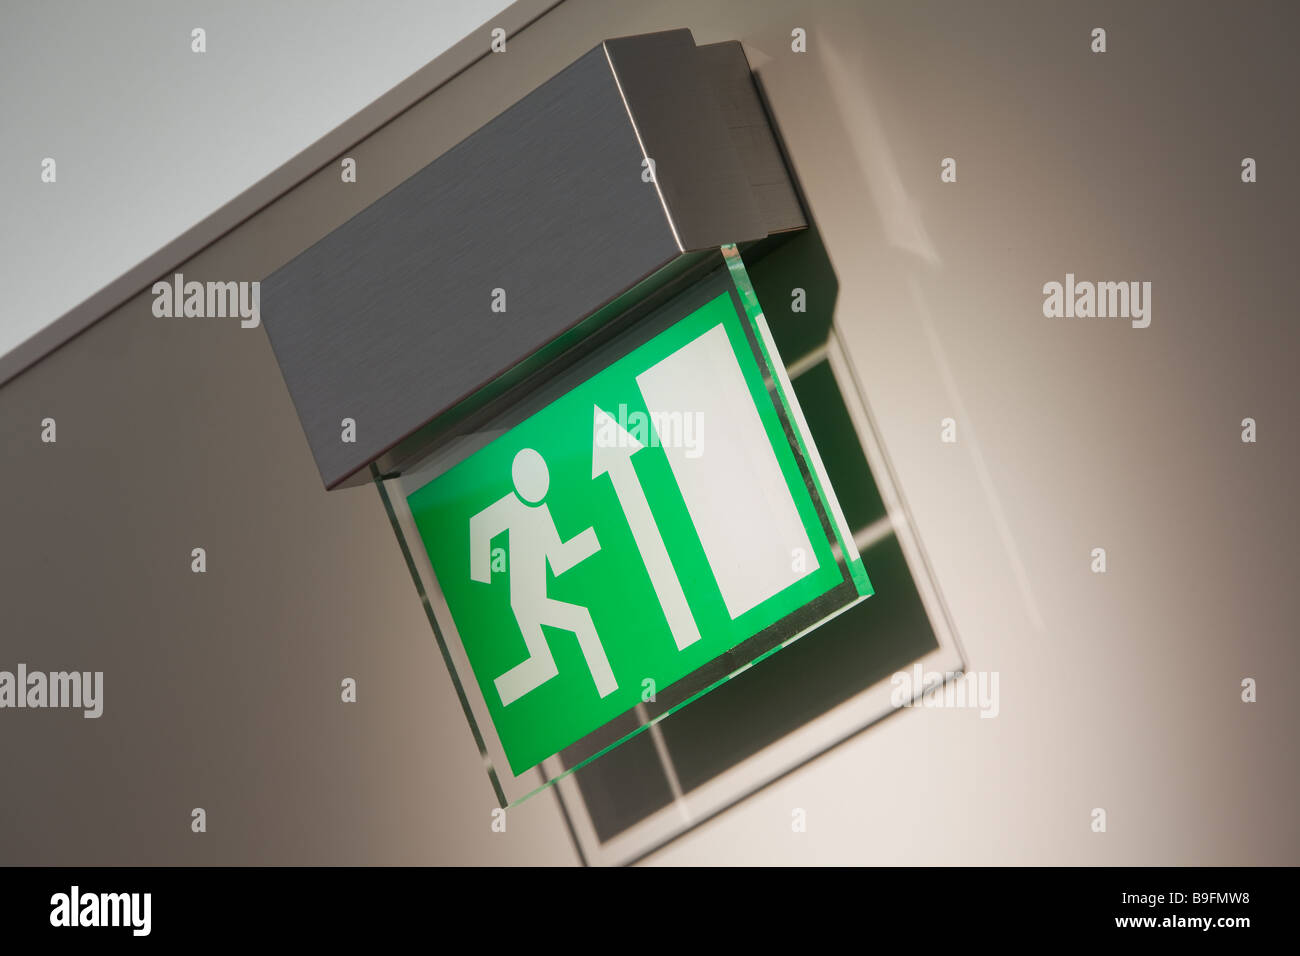 Exit sign for a retail premises Stock Photo